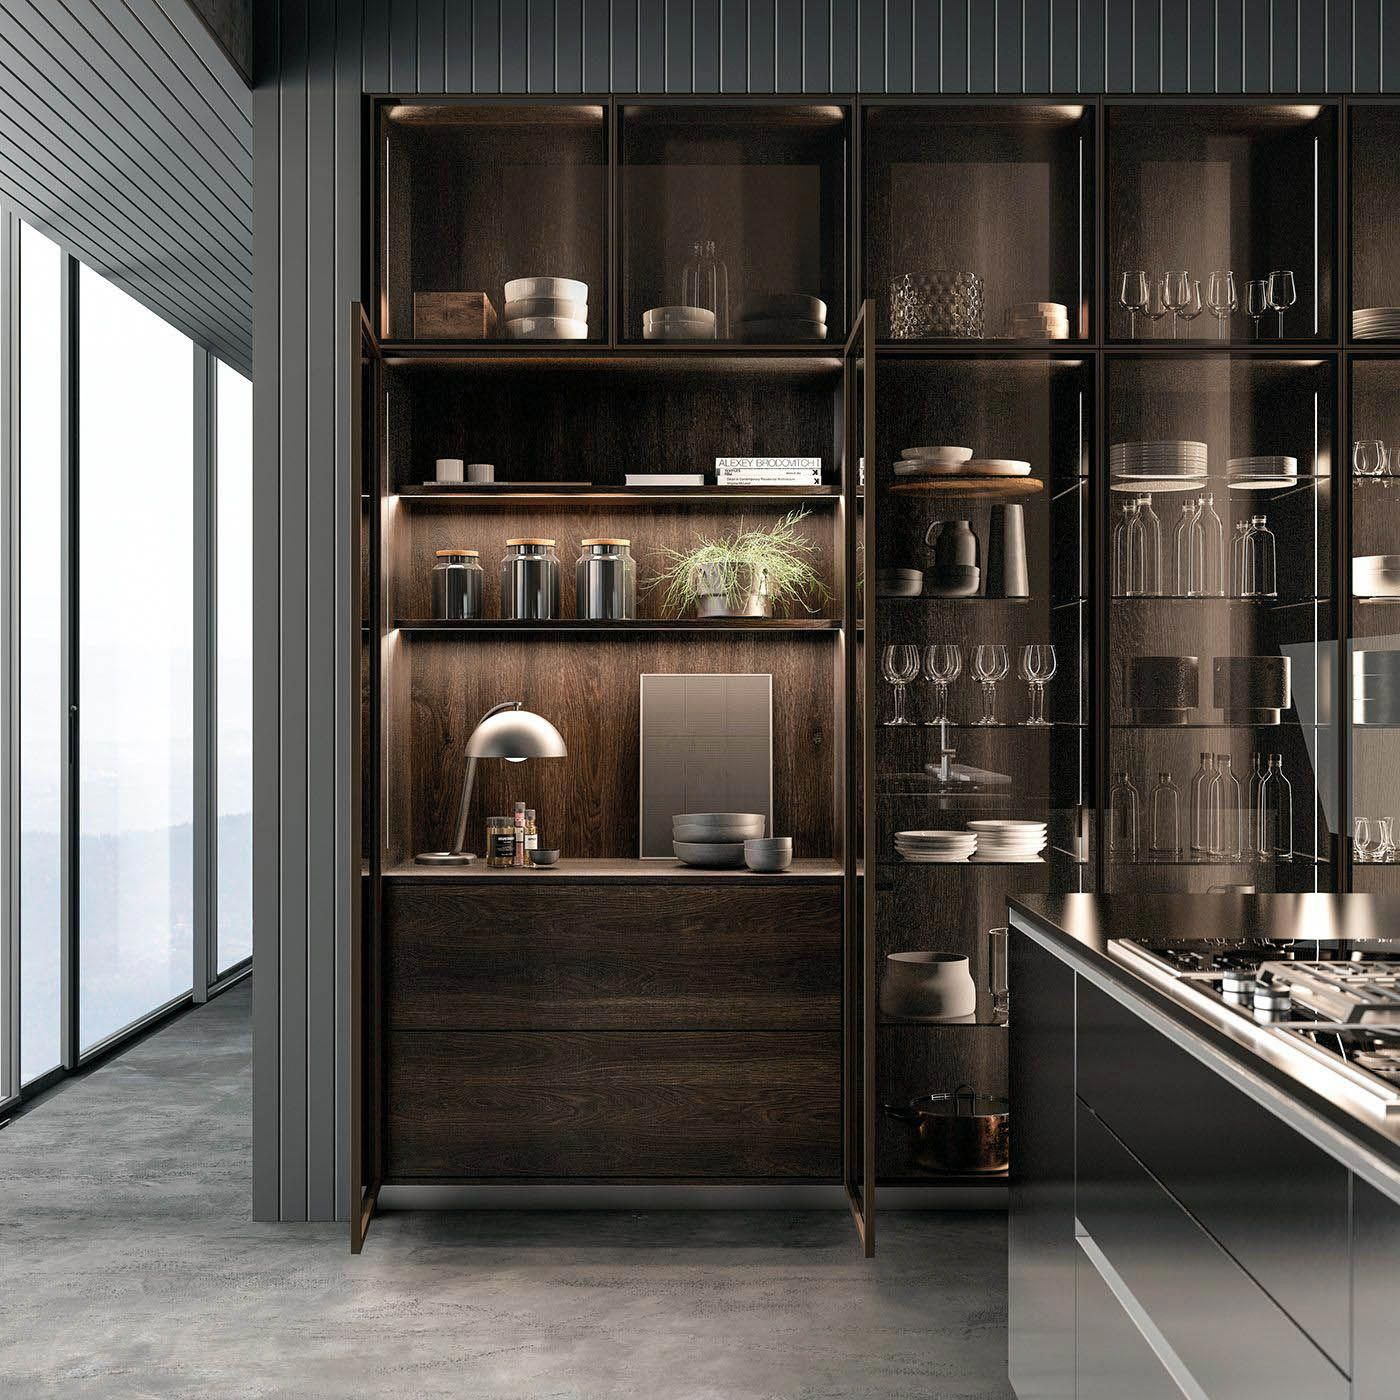 First Rate Kitchen Pantry Cabinet Home Depot Canada Exclusive On Homesable Home Decor Kitchenp In 2020 Pantry Cabinet Home Depot Home Decor Kitchen Home Depot Kitchen